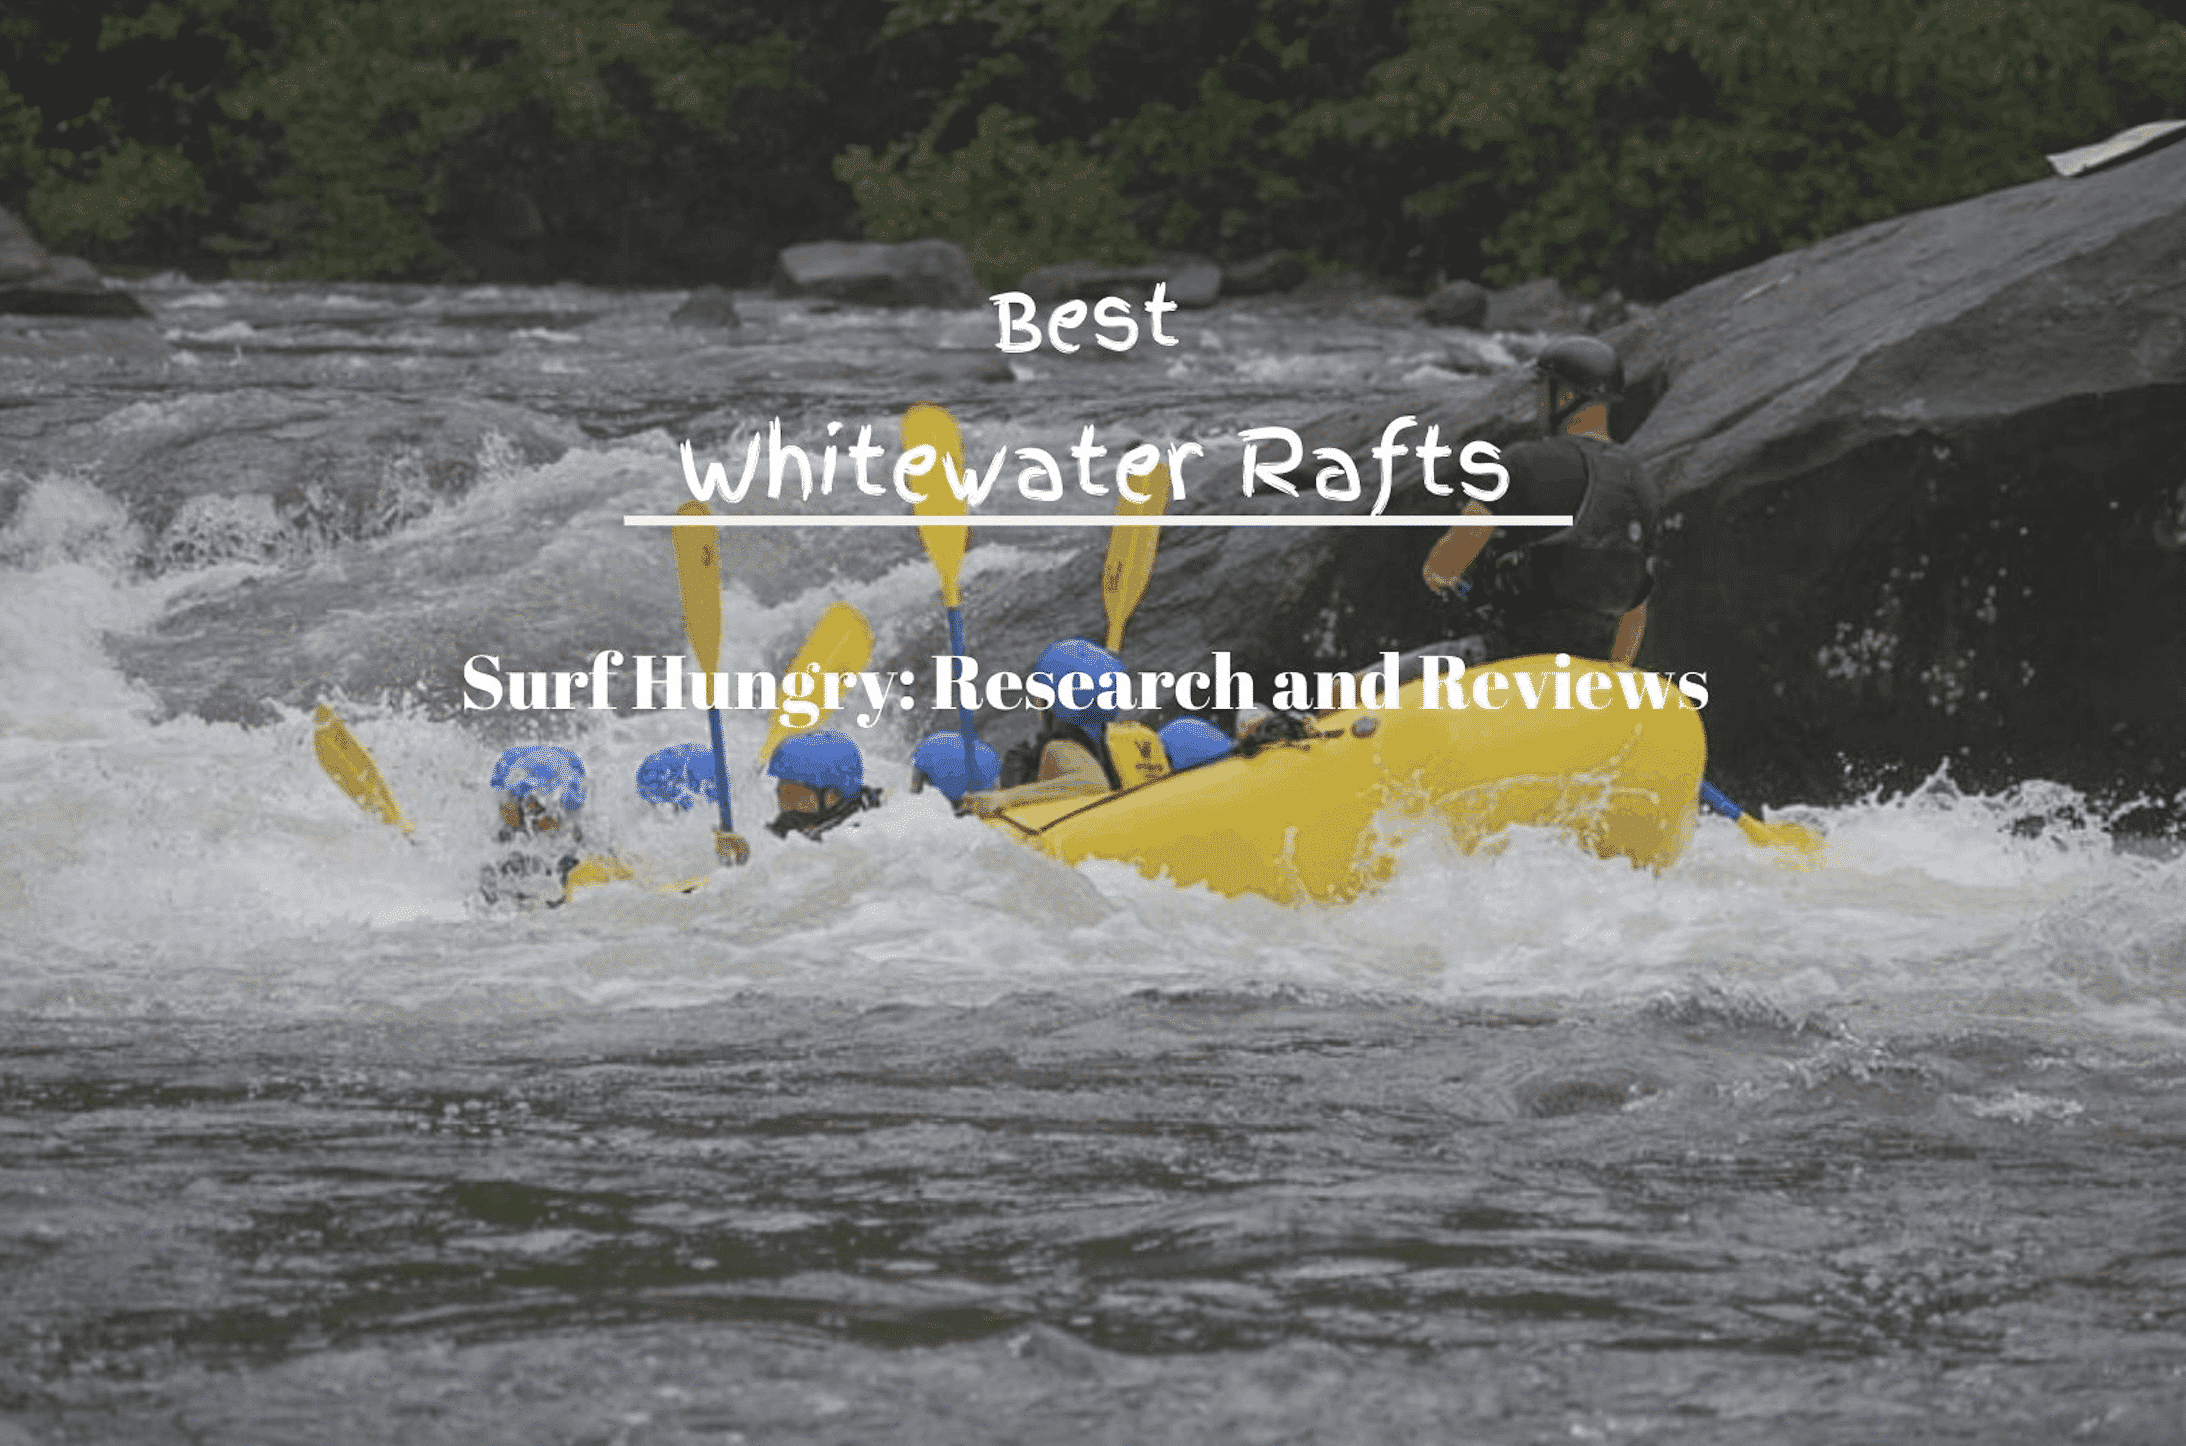 best whitewater rafts